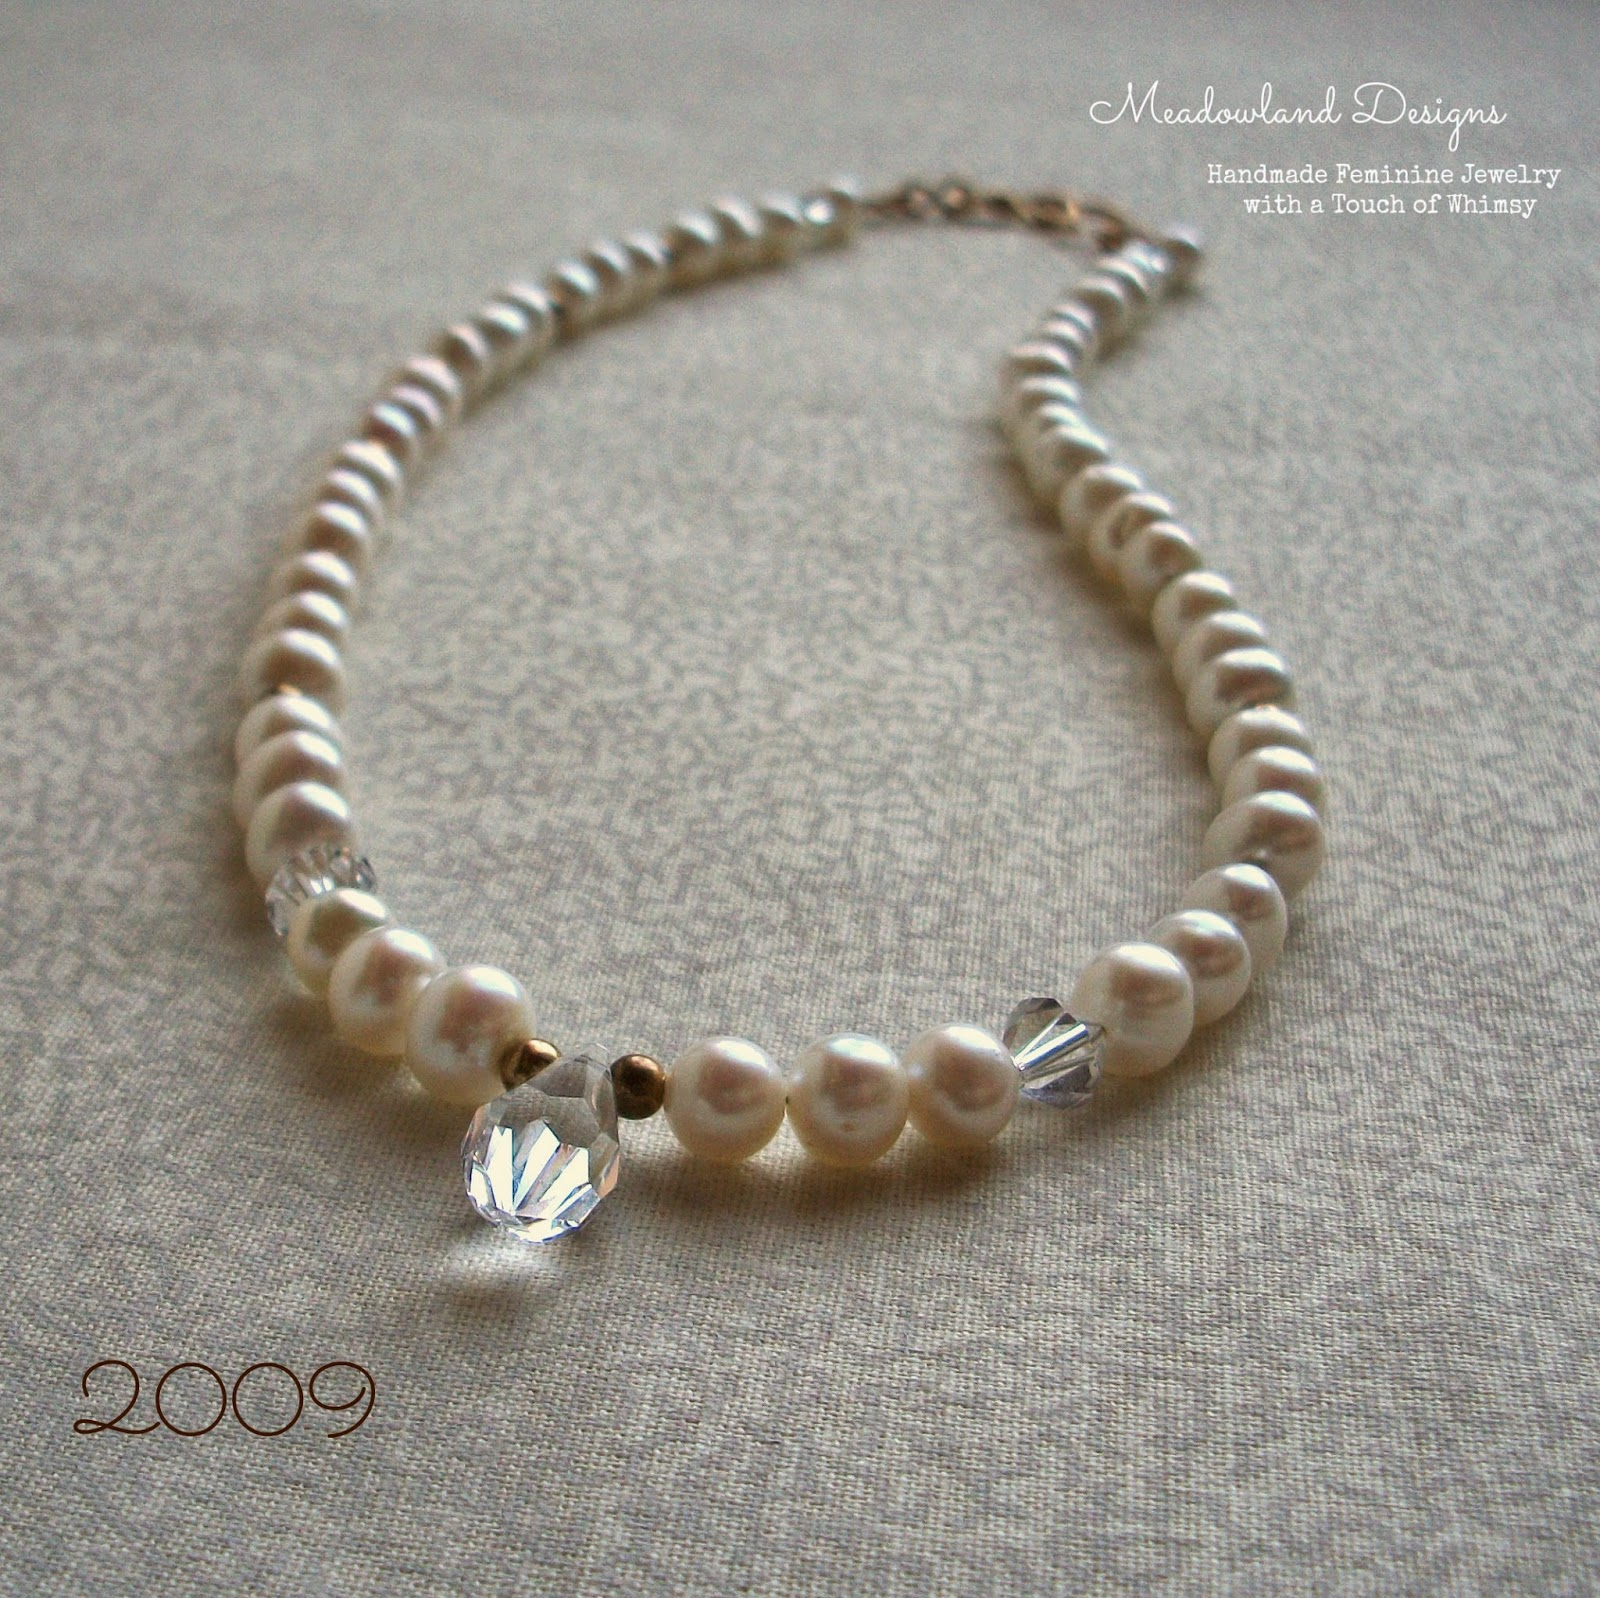 Strung Pearl Necklace with Crystals, 2009